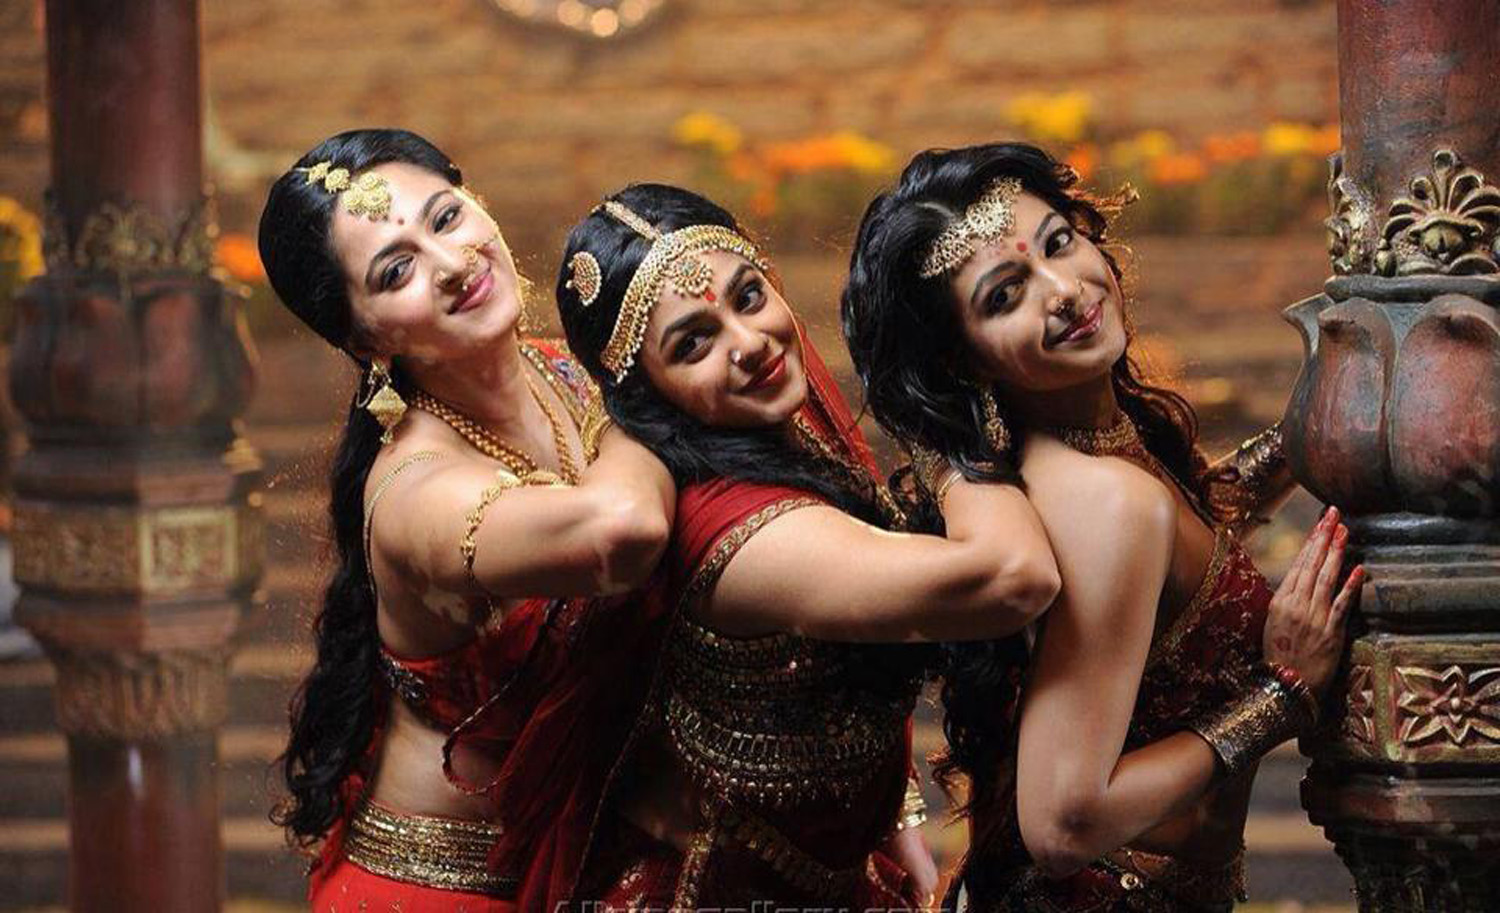 Rudhramadevi Stills-Images-Photos-Allu Arjunu-Anushka Shetty-Telugu Movie 2015-Onlookers Media